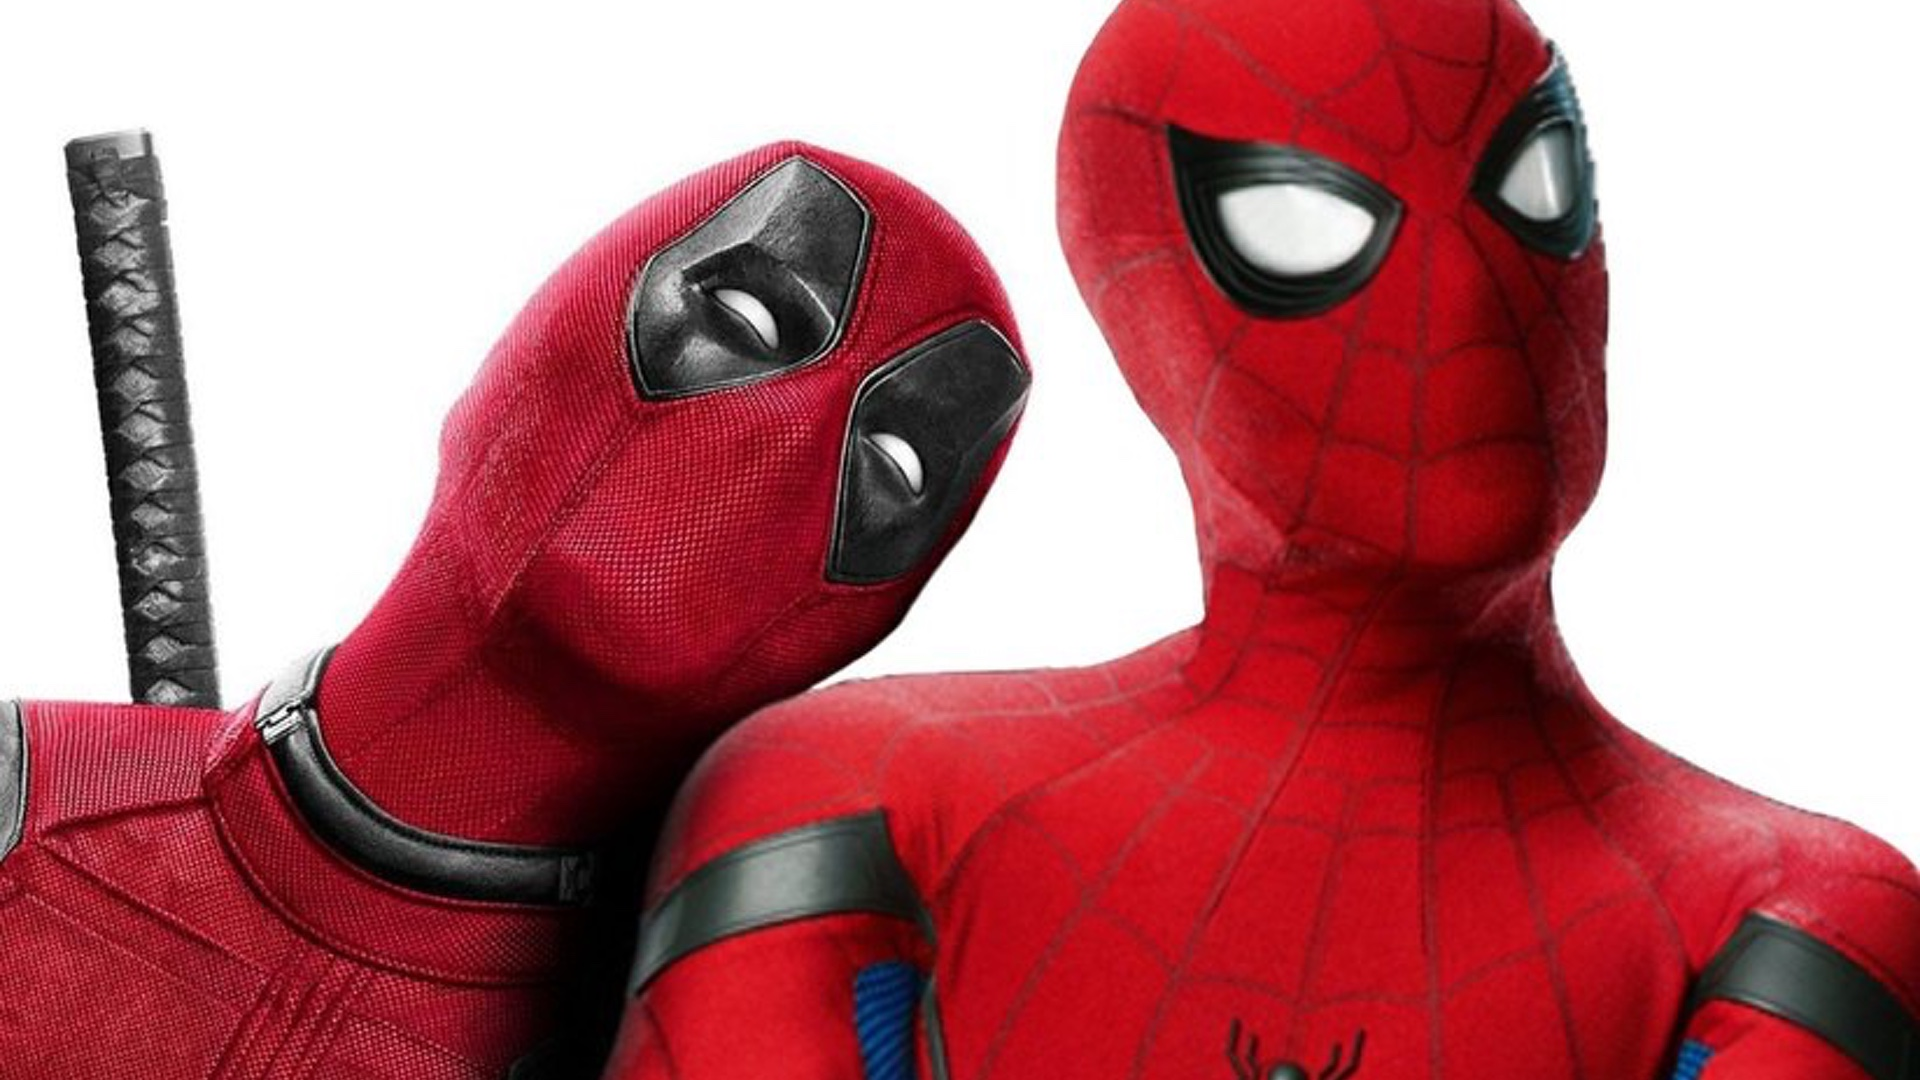 marvel-is-considering-introducing-deadpool-into-the-mcu-in-the-next-spider-man-film-social.jpg